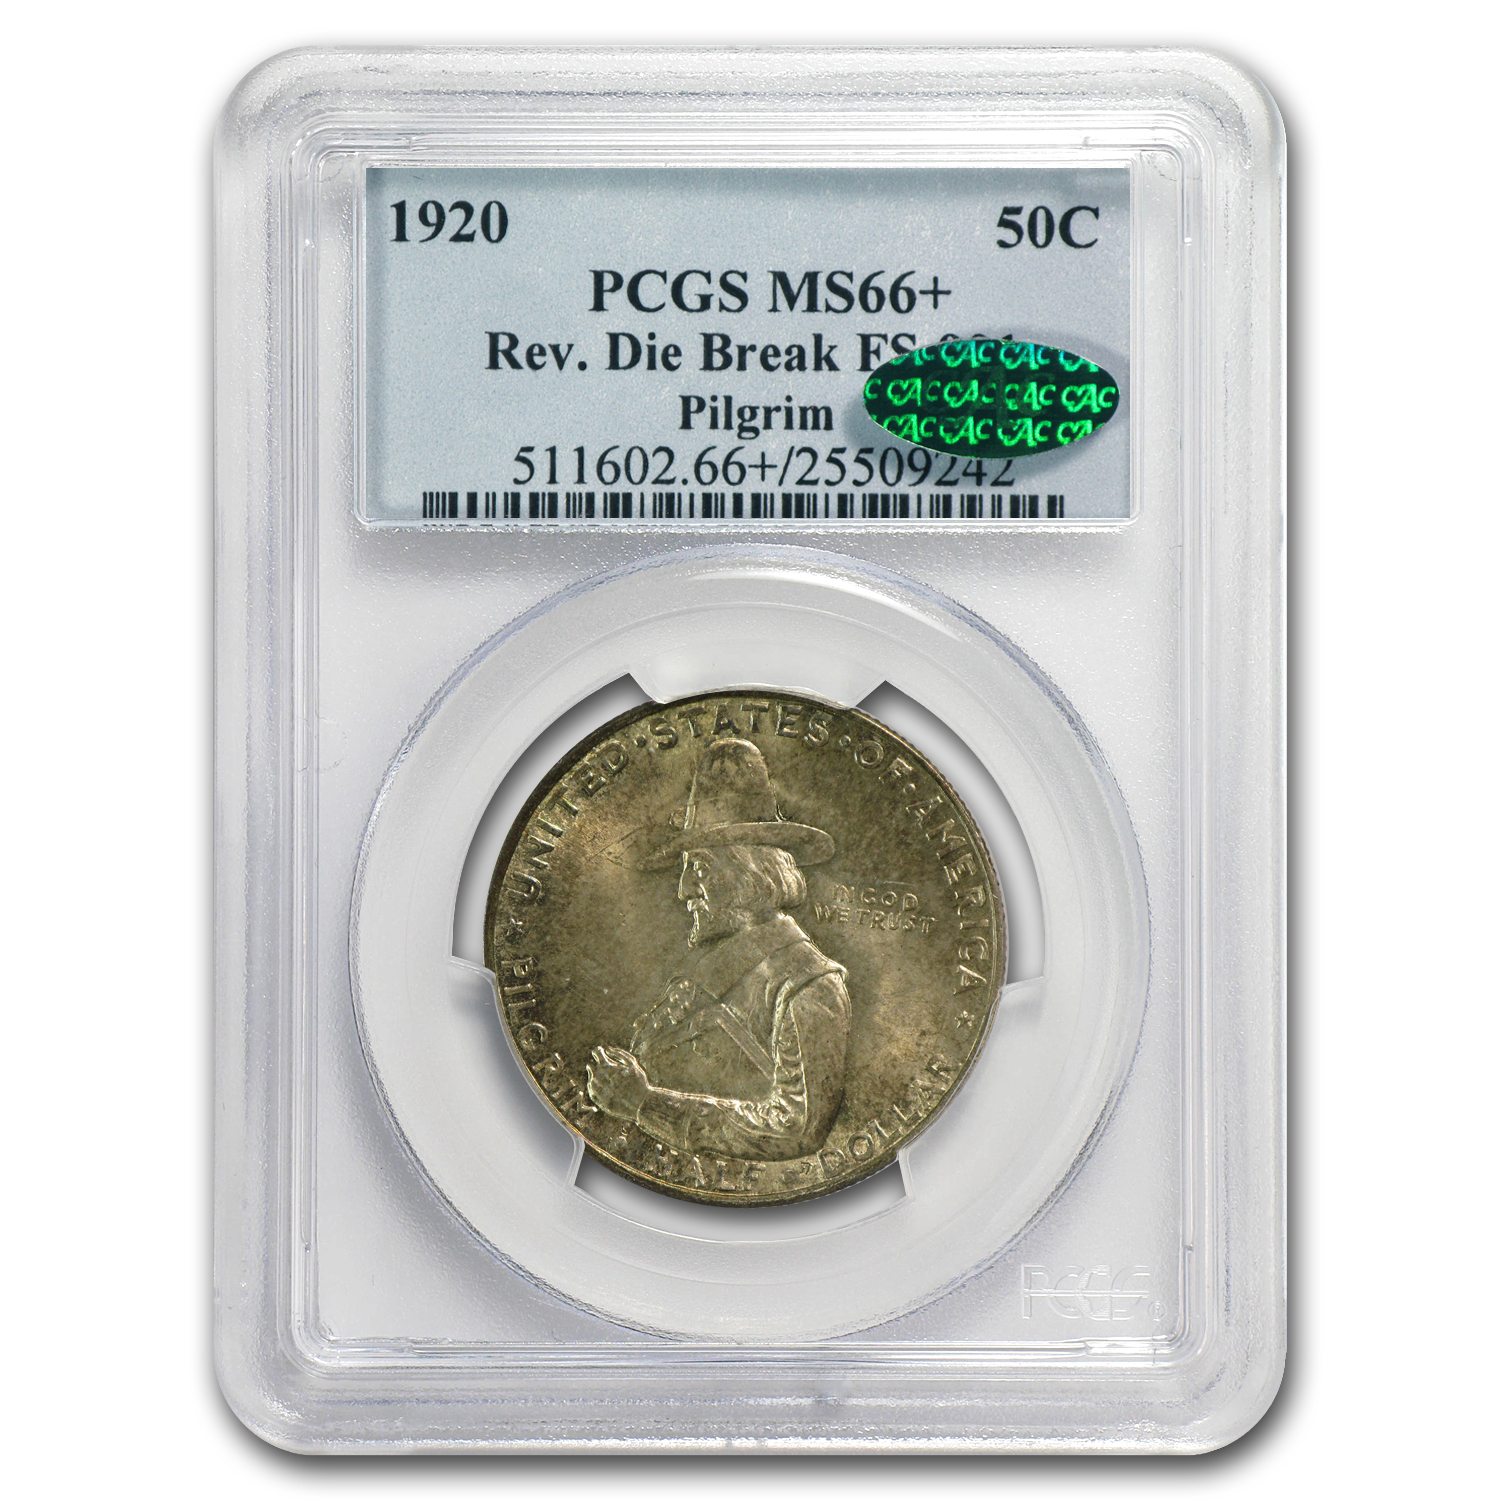 1920 Pilgrim Half Dollar MS-66+ PCGS (CAC, Die Break Variety)